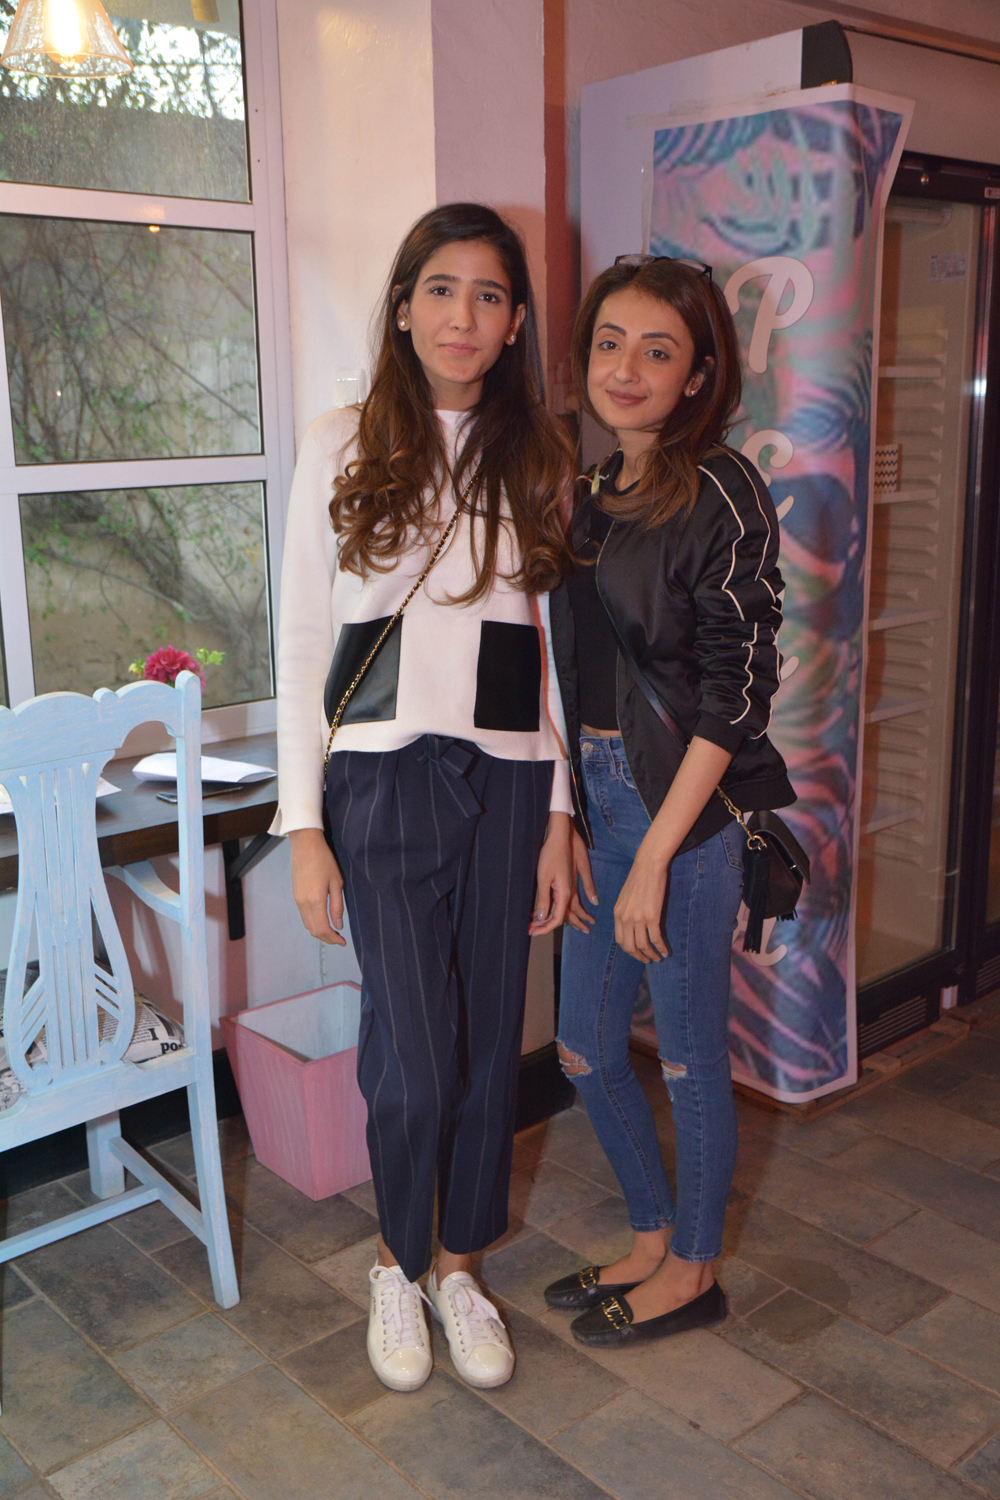 Manahyl Shafi and Haya Ijaz